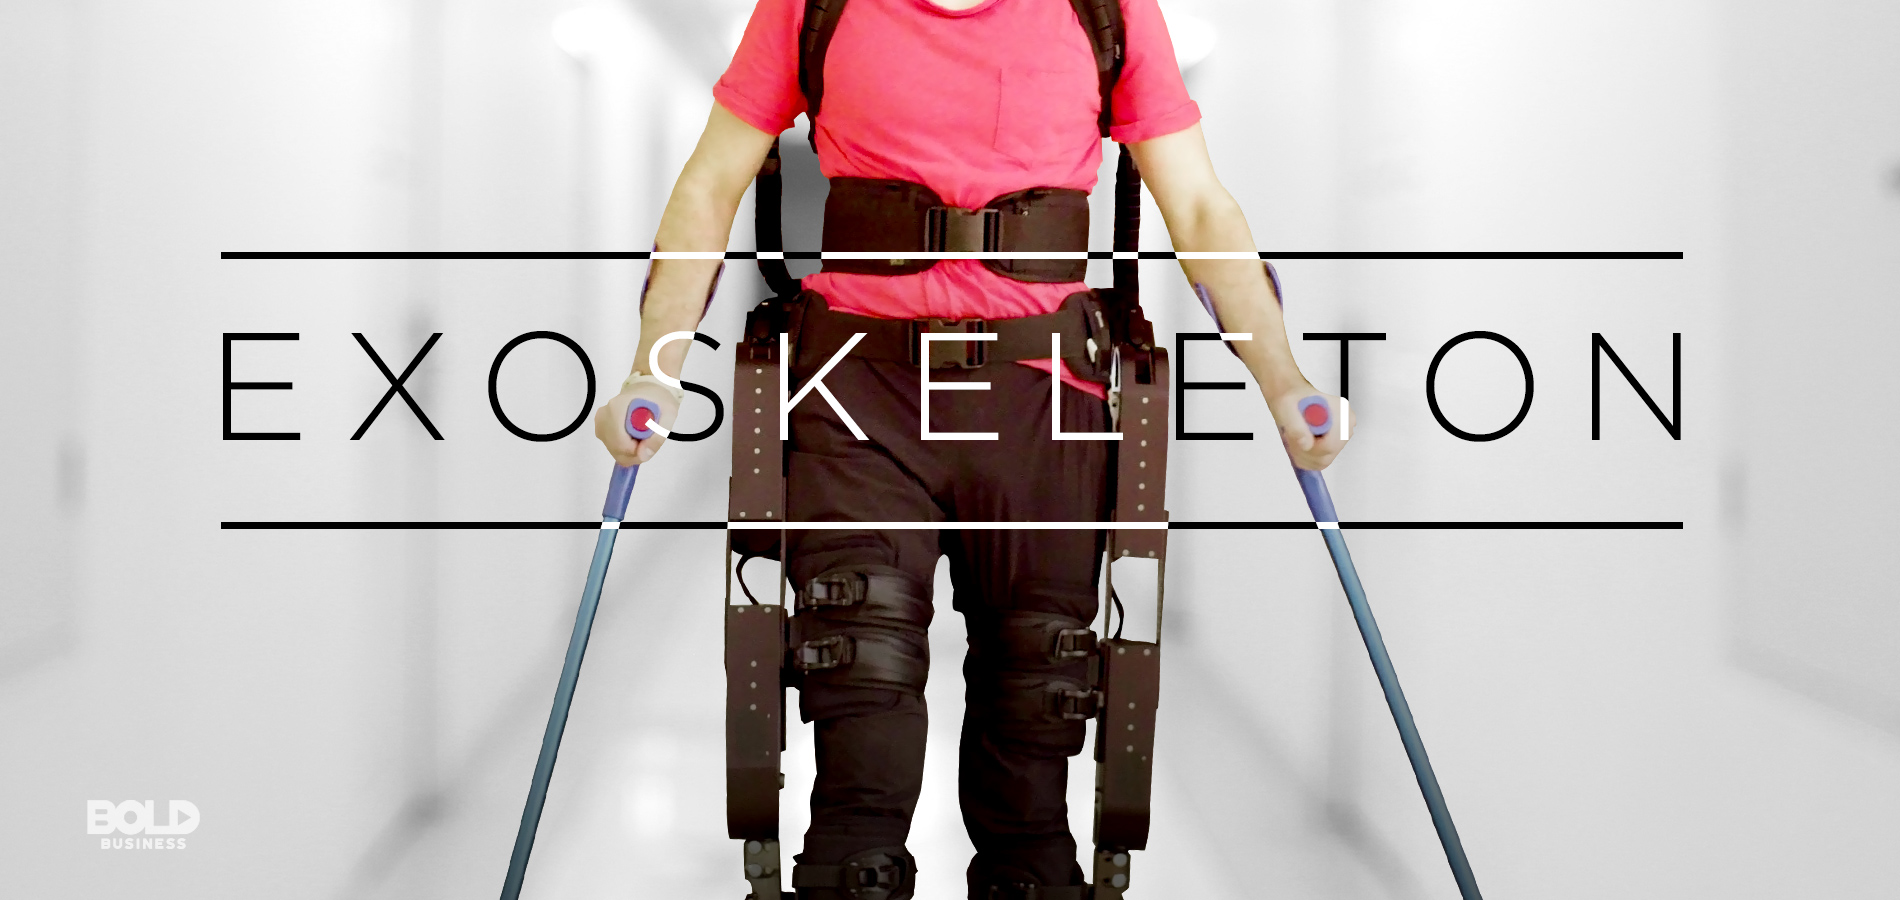 a photo of a man's torso and legs, wearing a robotic exoskeleton amid the rise of advancements in robotics in rehabilitation